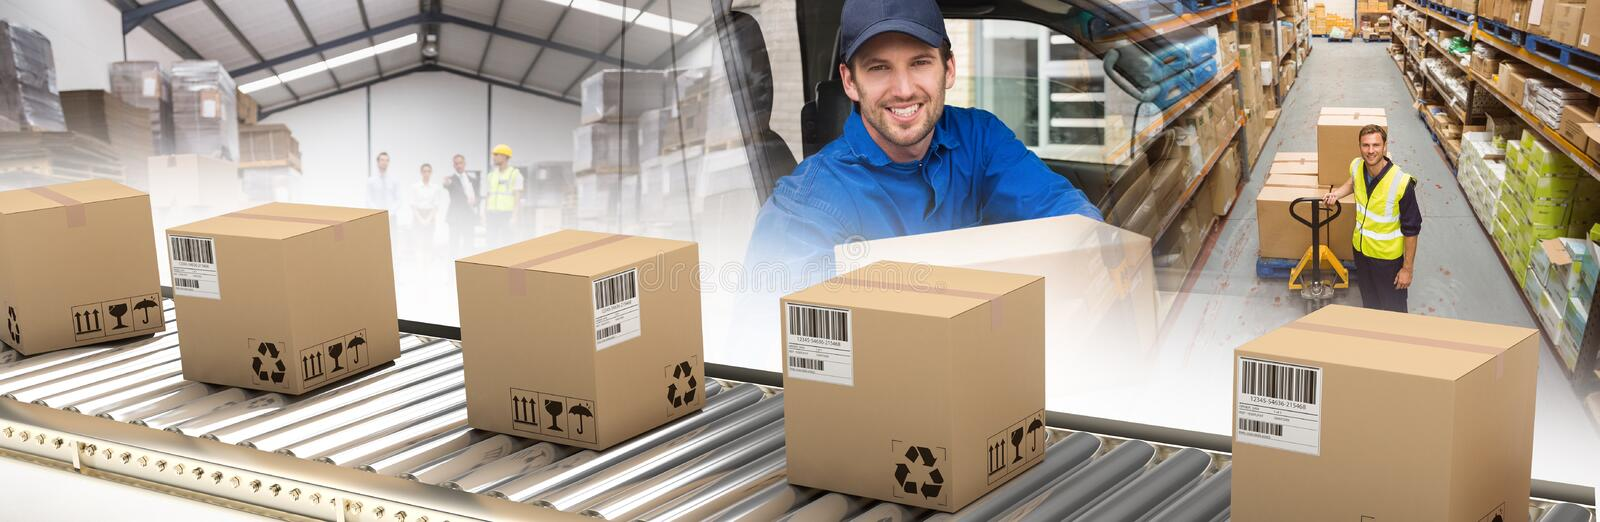 Composite image of cardboard boxes on production line royalty free stock image